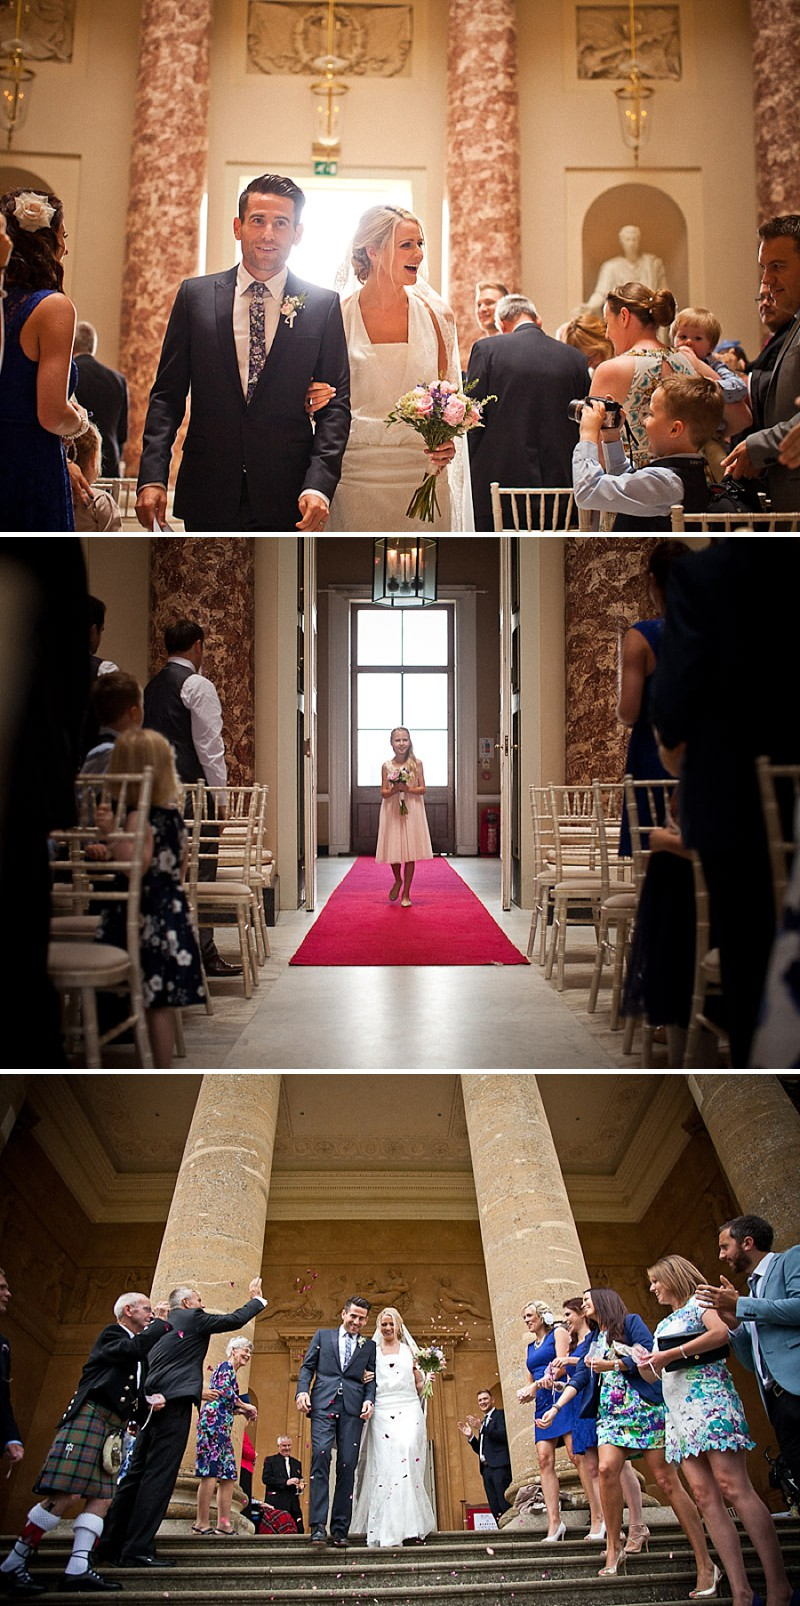 An Elegant Wedding At Stowe House In Buckinghamshire With Bride In Twenties Style Charlie Brear Gown And Groom In Suit By The Kooples Images From Matt Parry Photography_0005